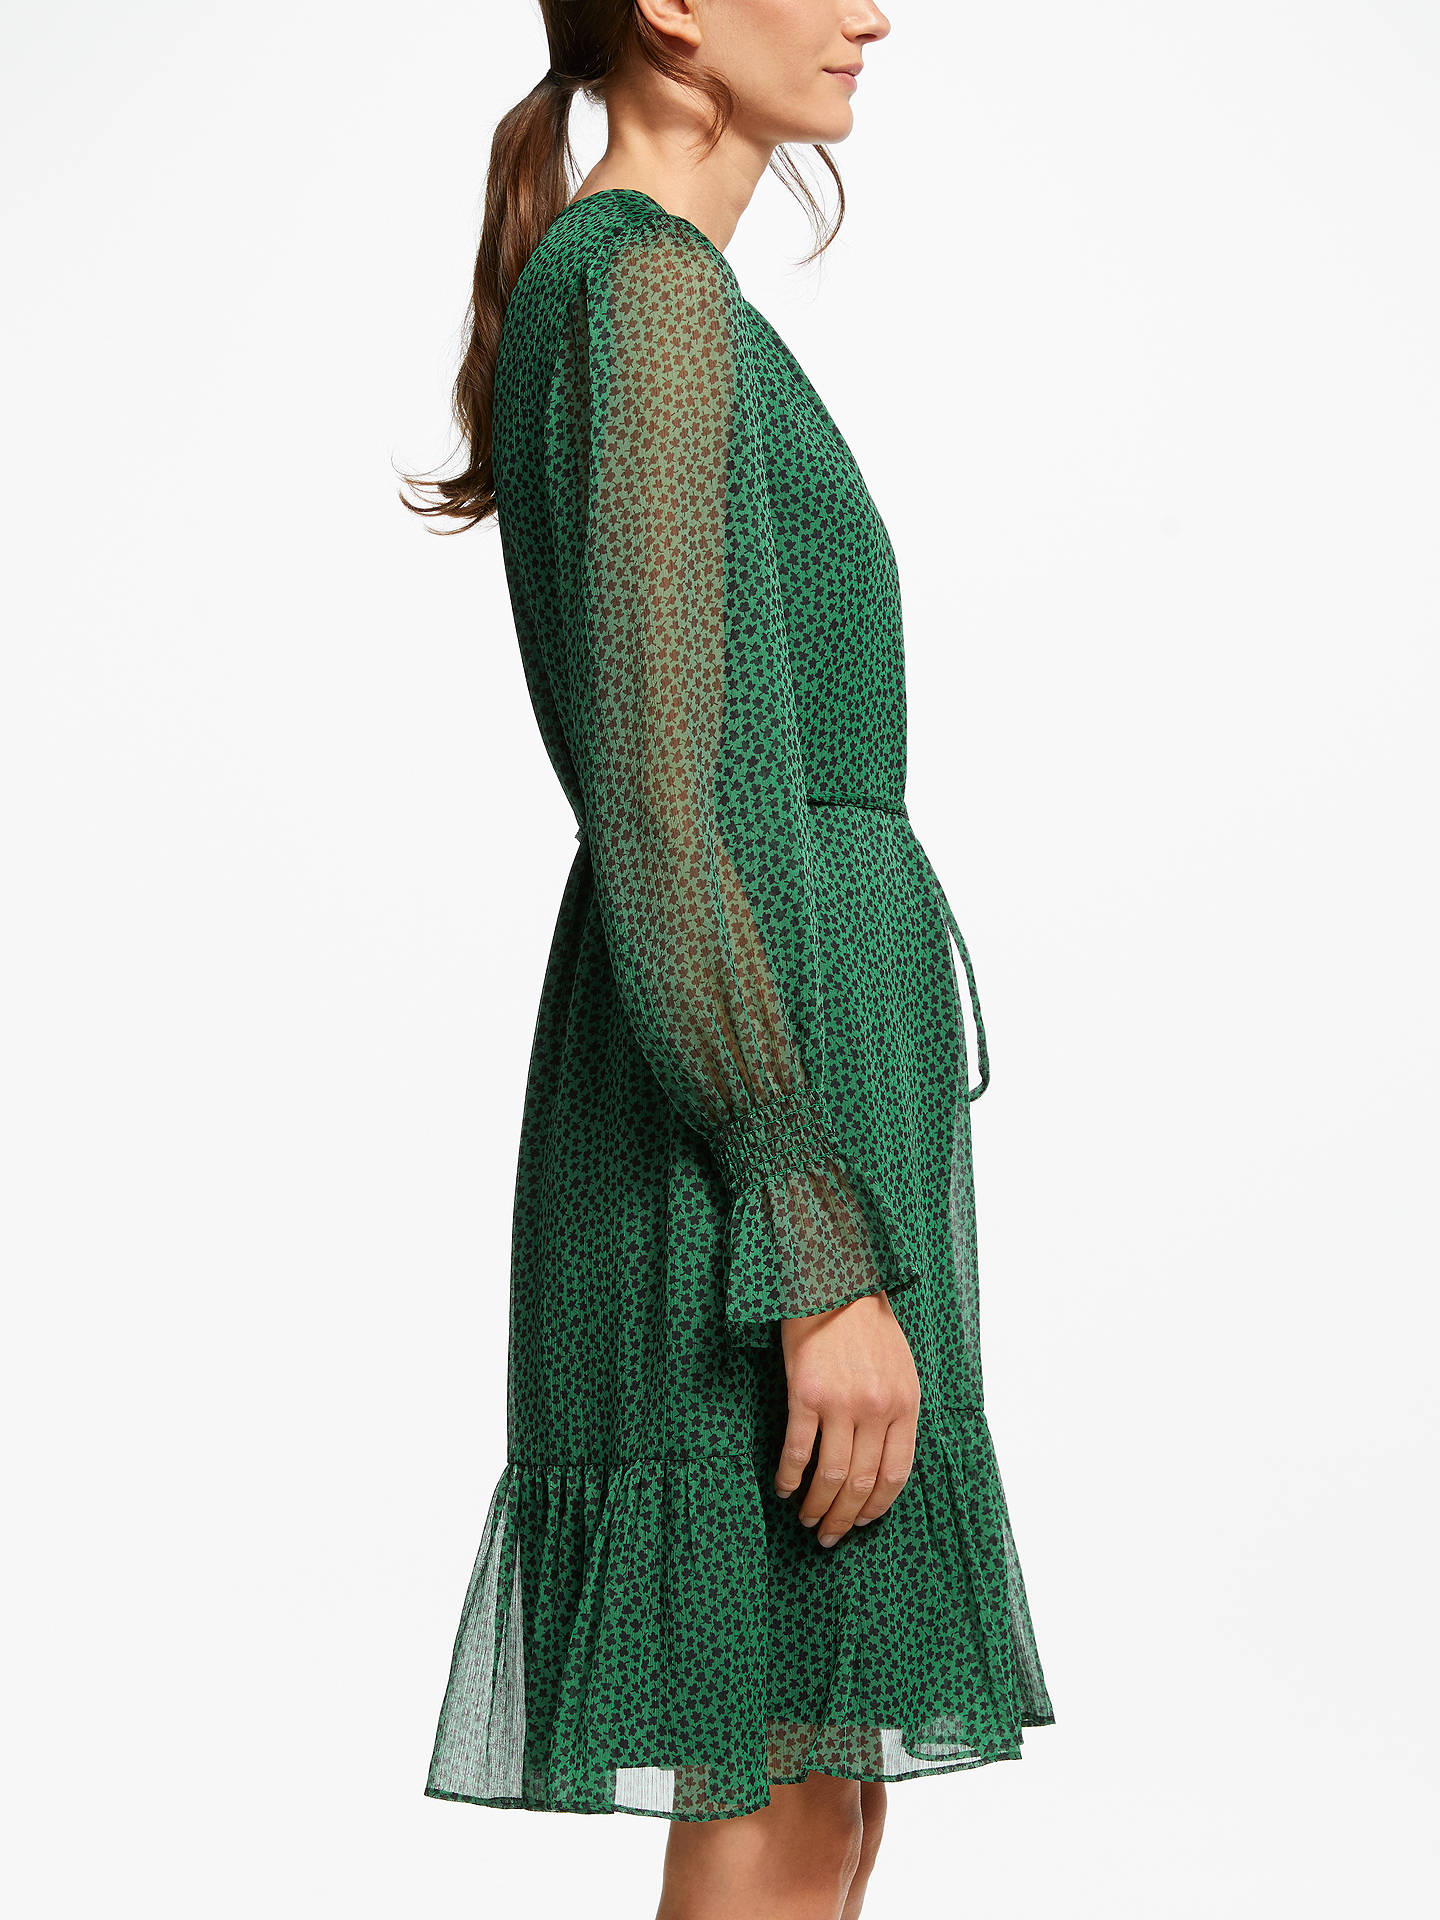 BuyBoden Libby Dress, Amazon Green Petal, 18 Online at johnlewis.com